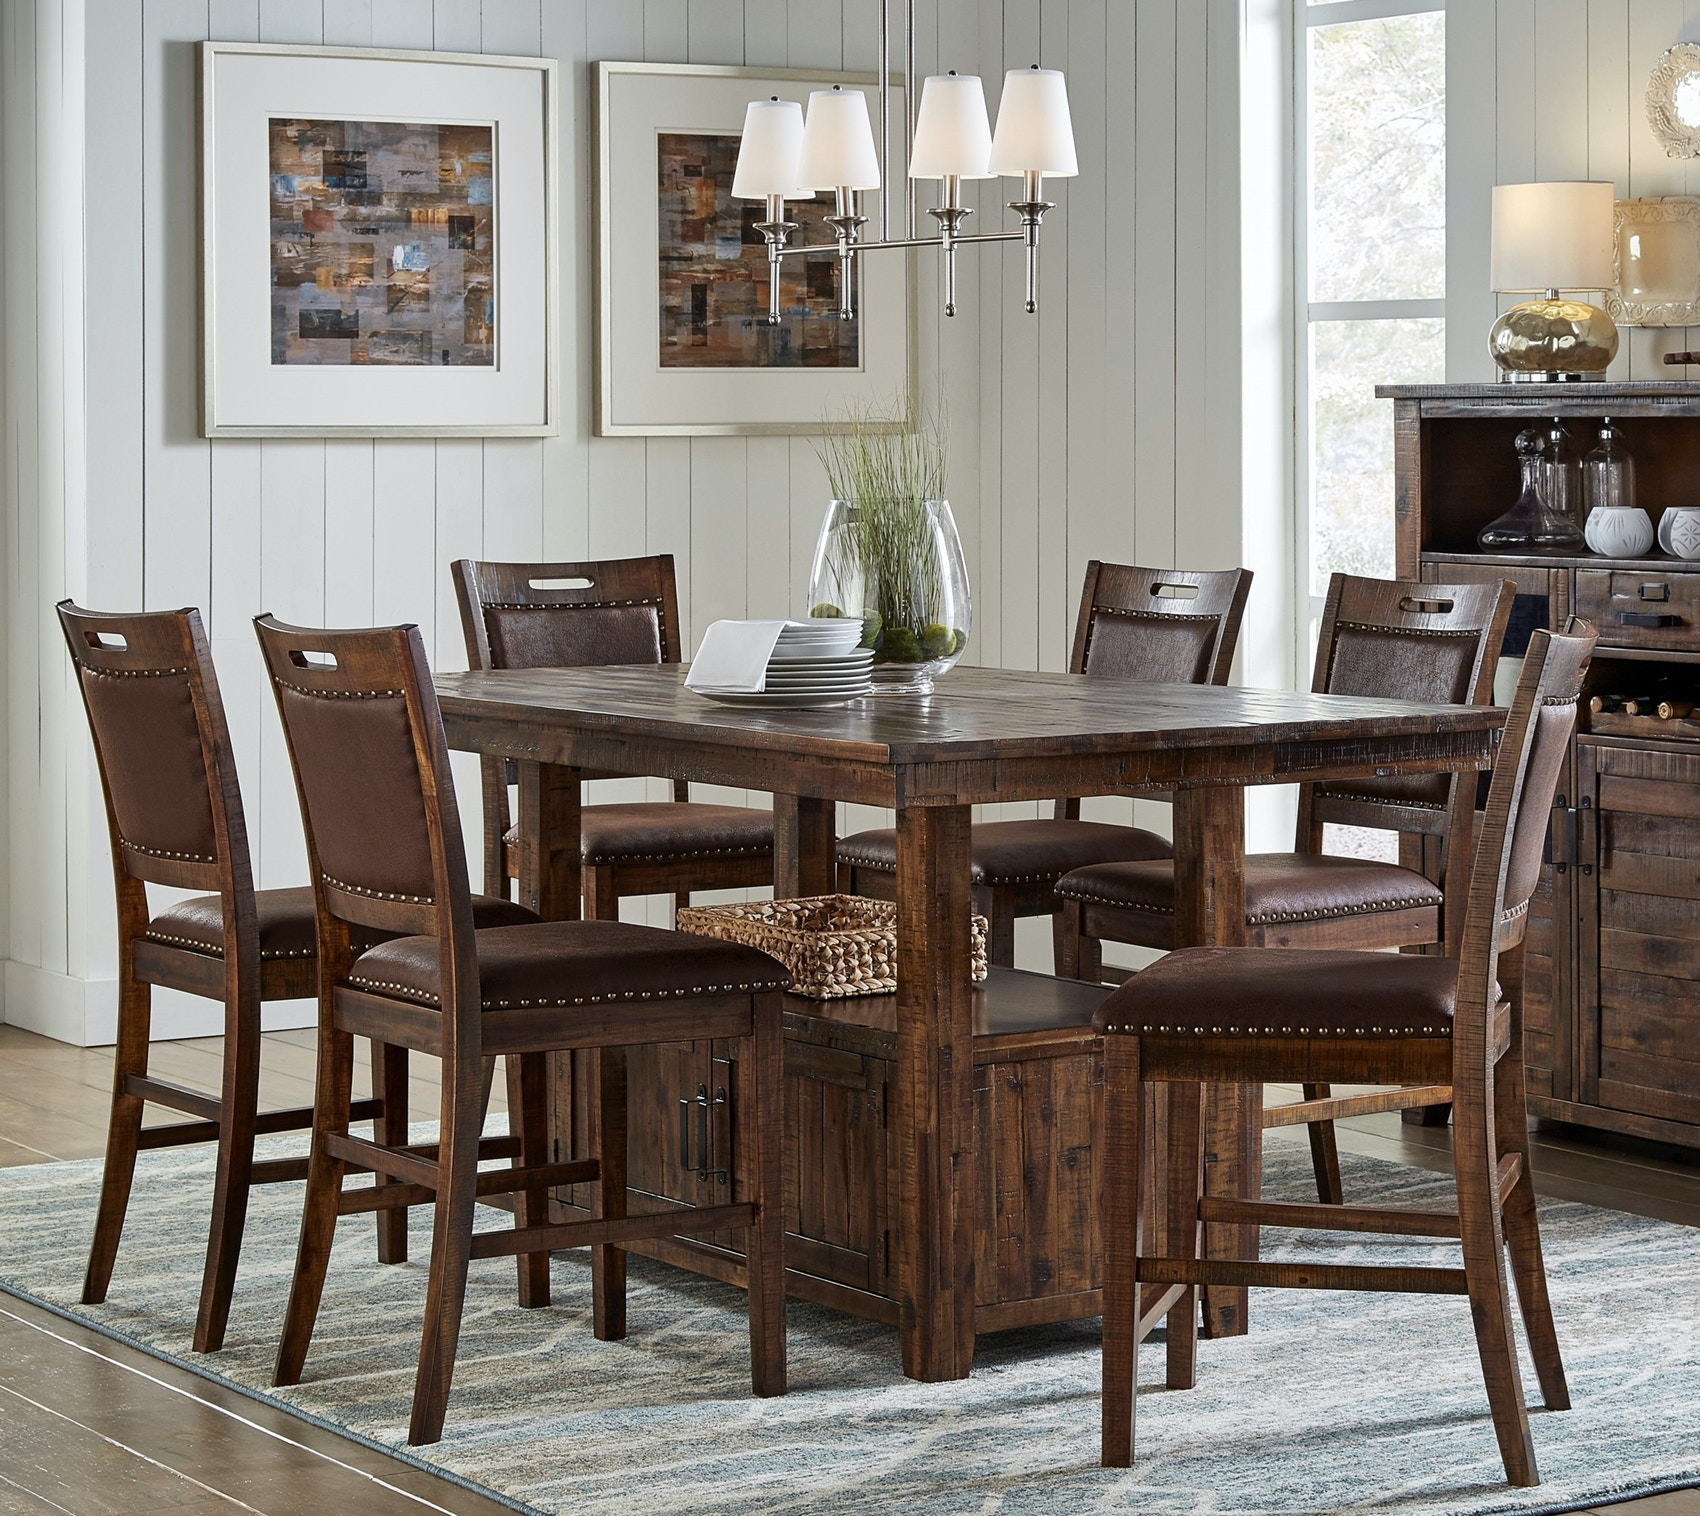 Jofran Dining Room Cannon Valley Counter Dining Set 591191